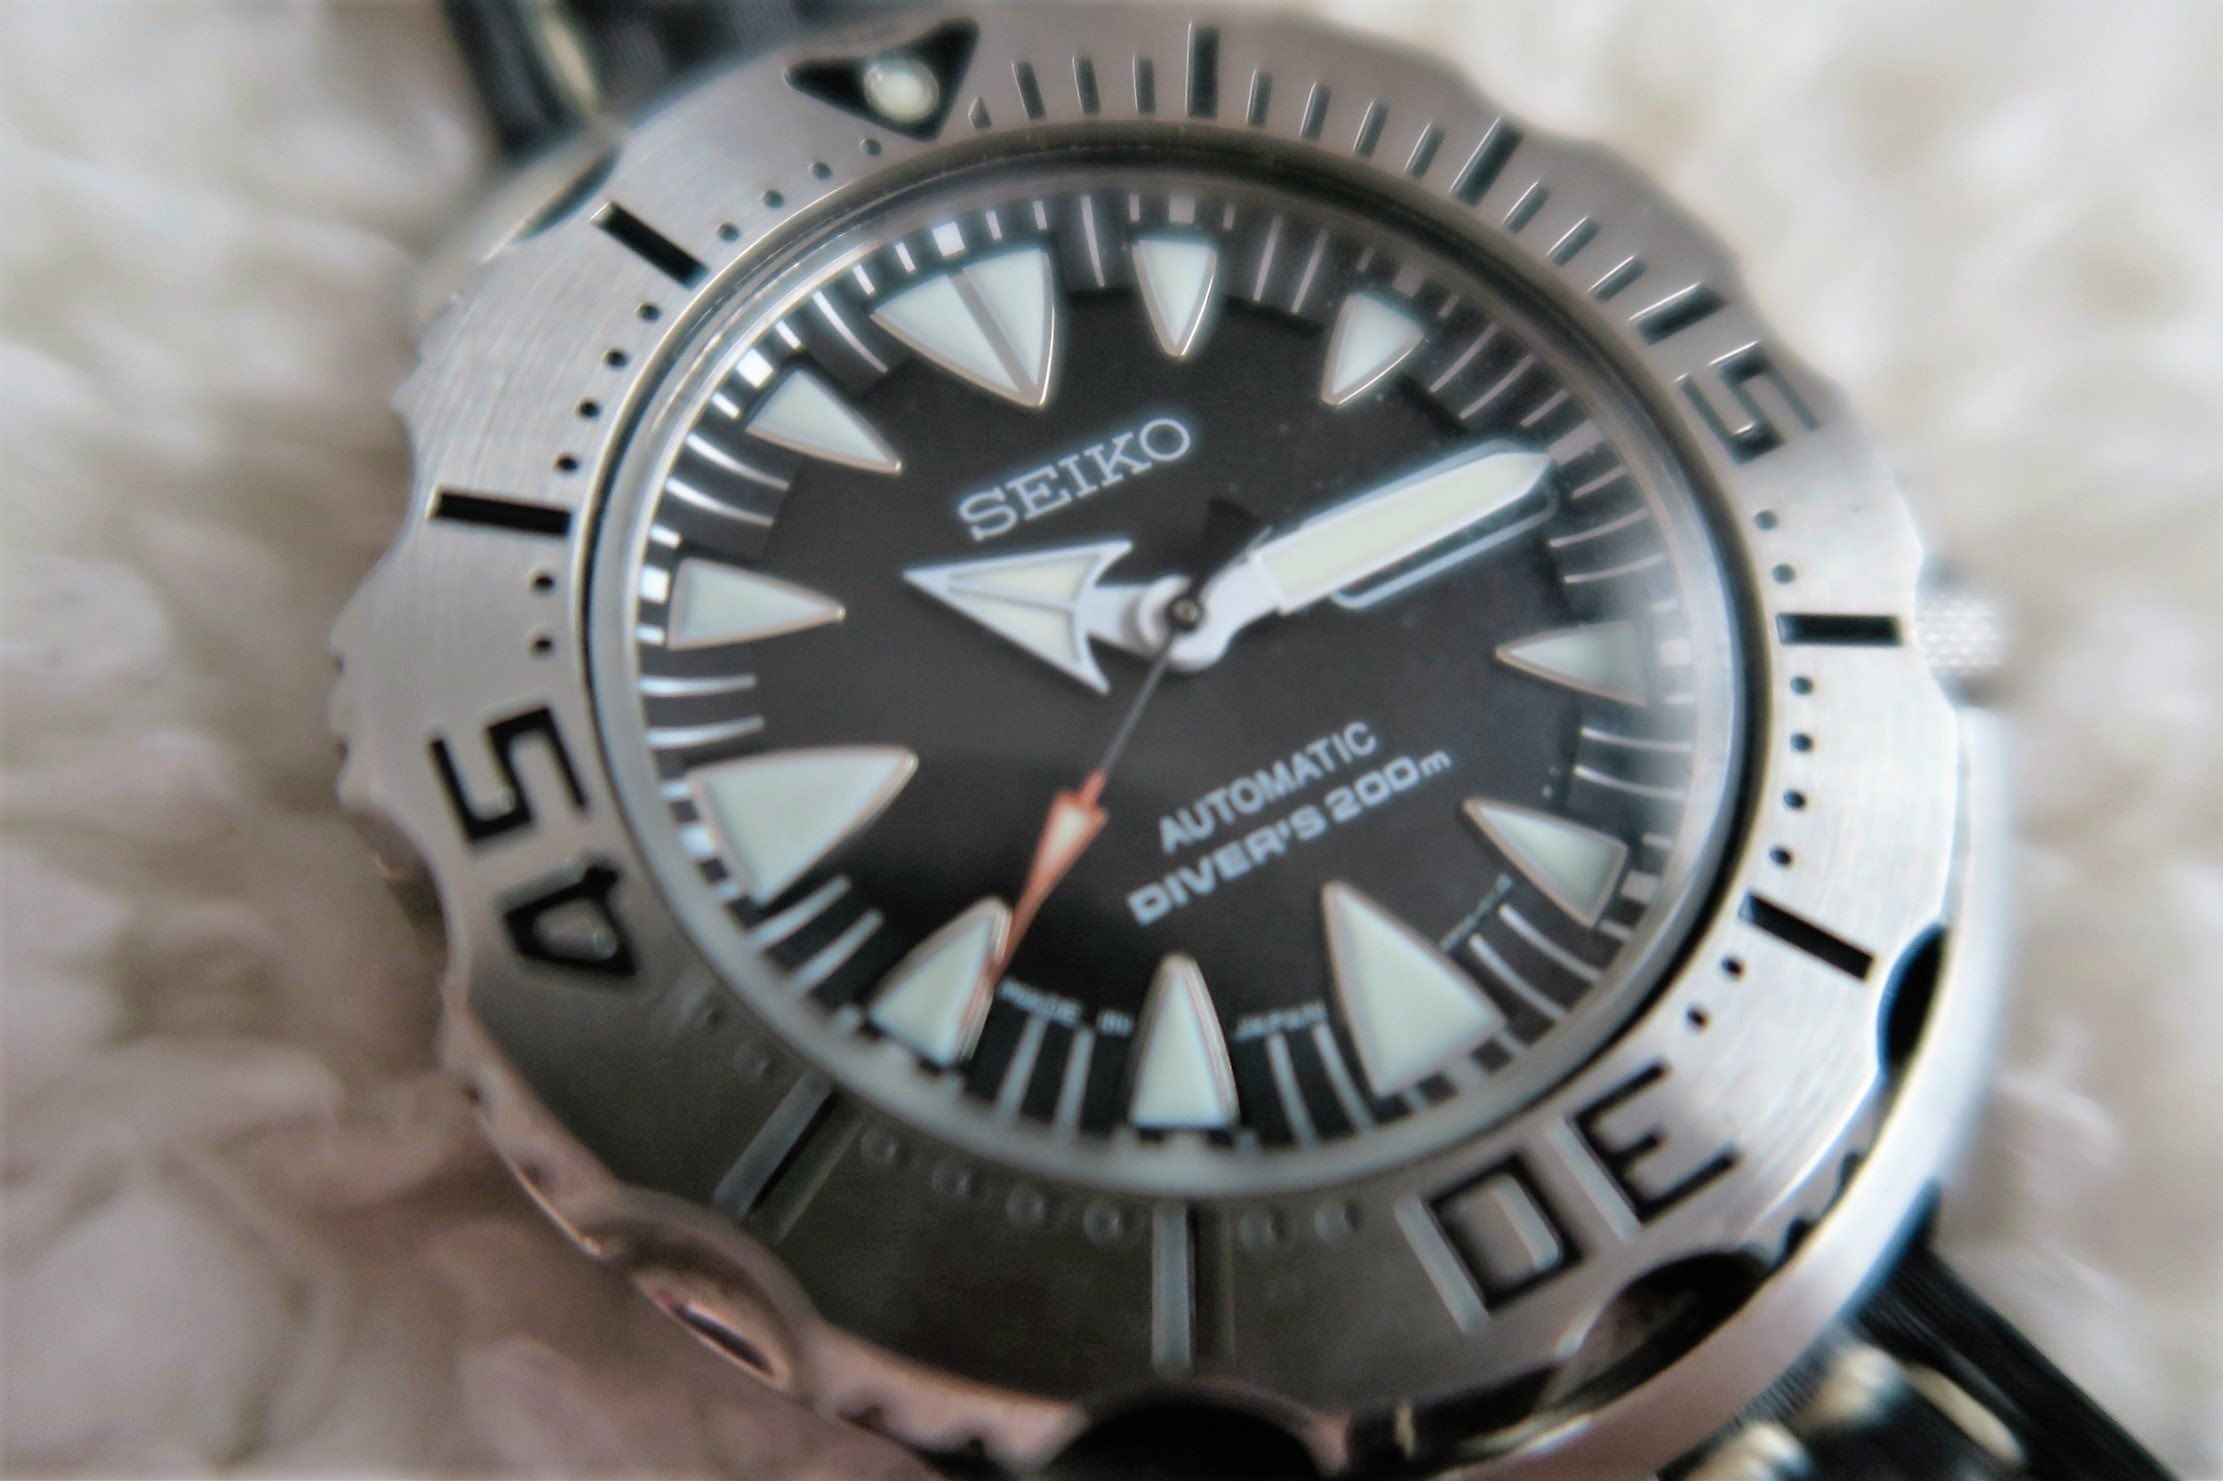 mirexal and found vintage dive page a omega wear i scuba eyes forums of but diving threads easy not watch quite this am person to watches obscure on the much